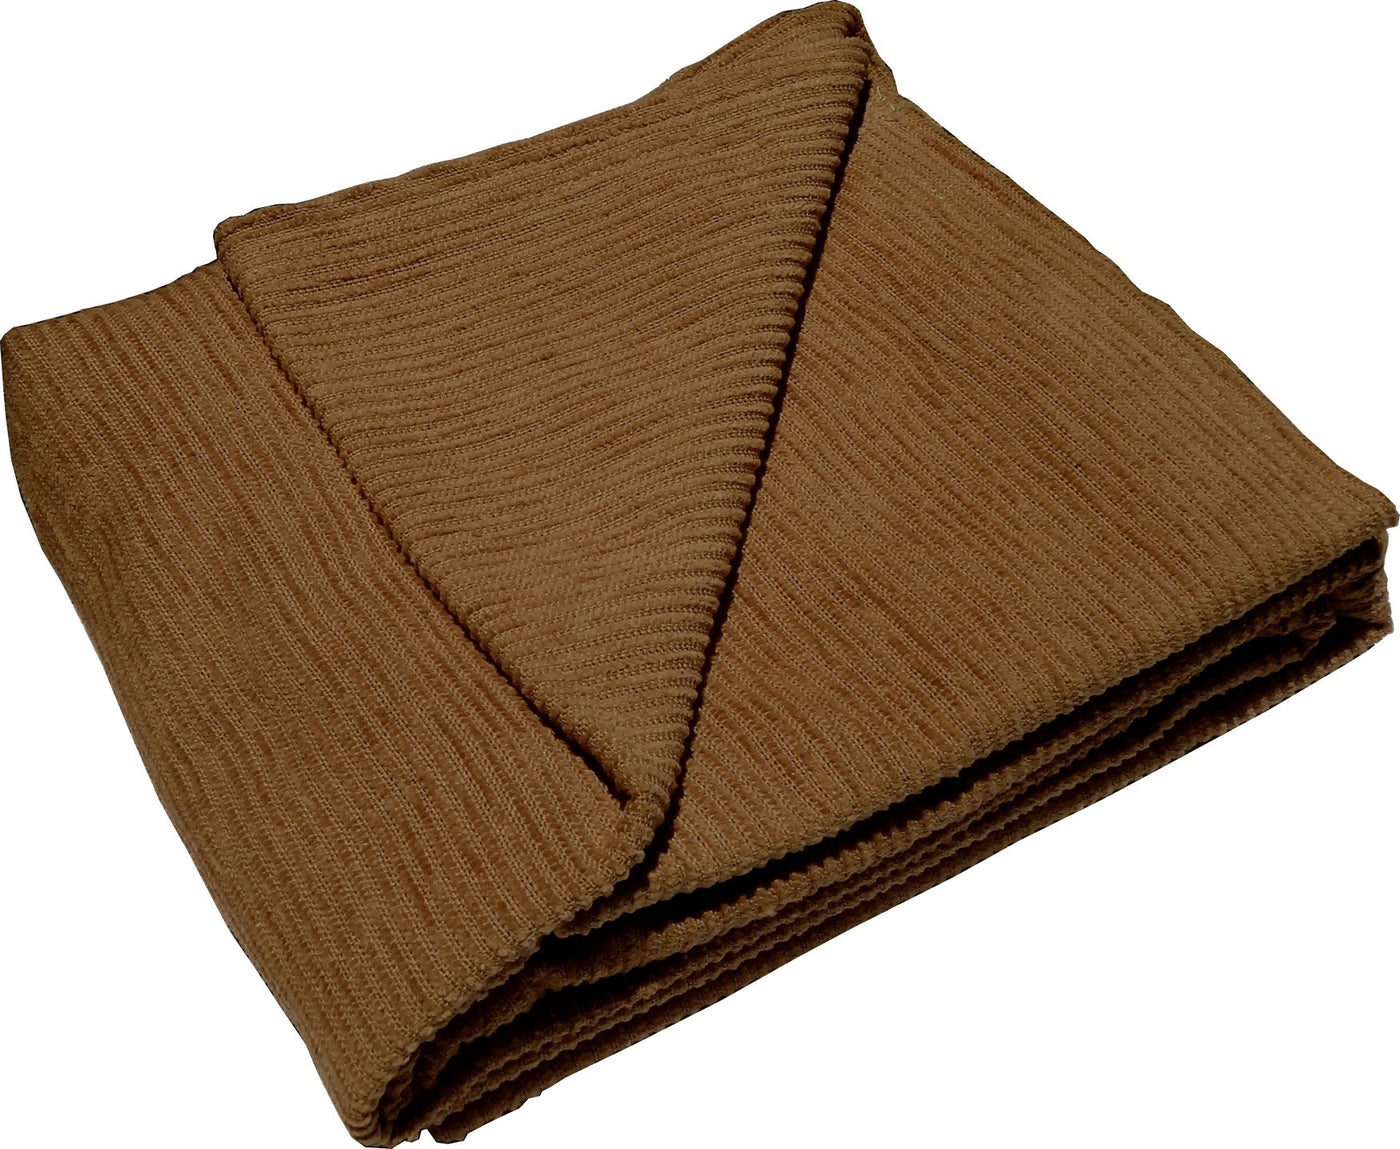 "Brown Striped Chenille 40 x 56"" Toddler Blanket"